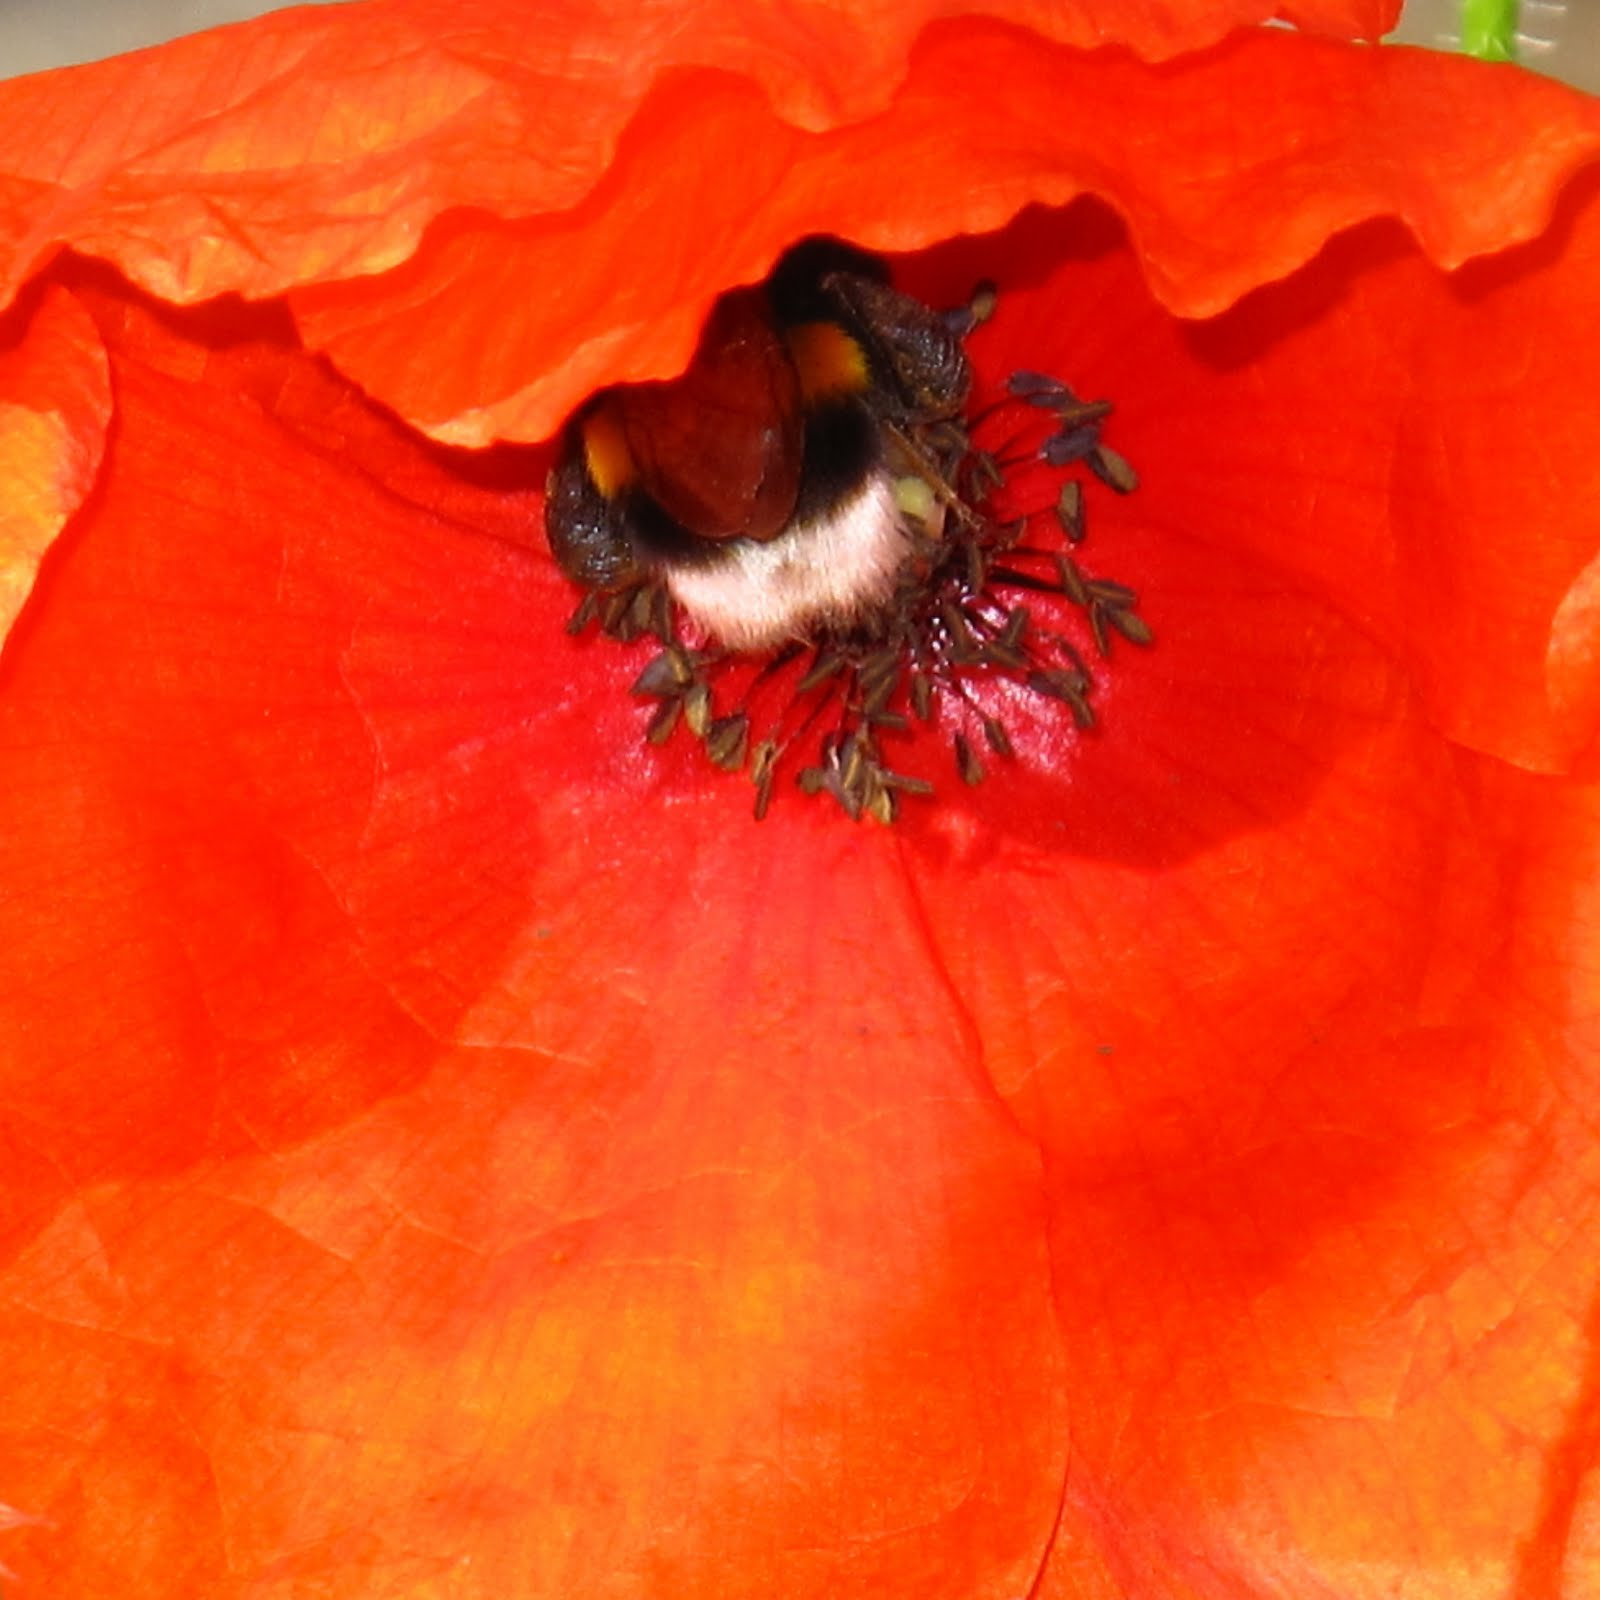 BugBlog: Buzzing bees in poppies